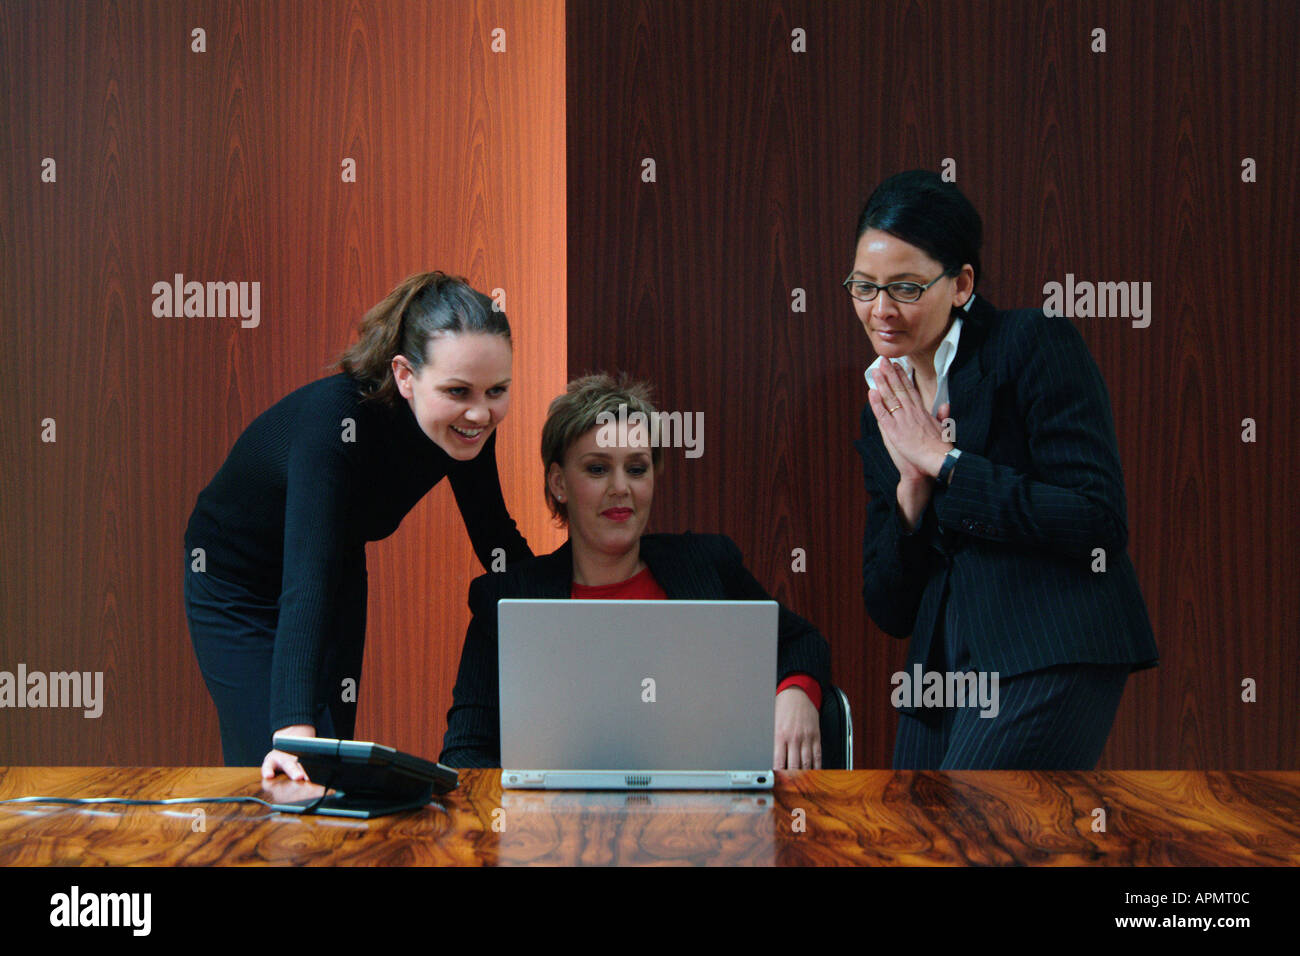 Businesswomen in boardroom Stock Photo